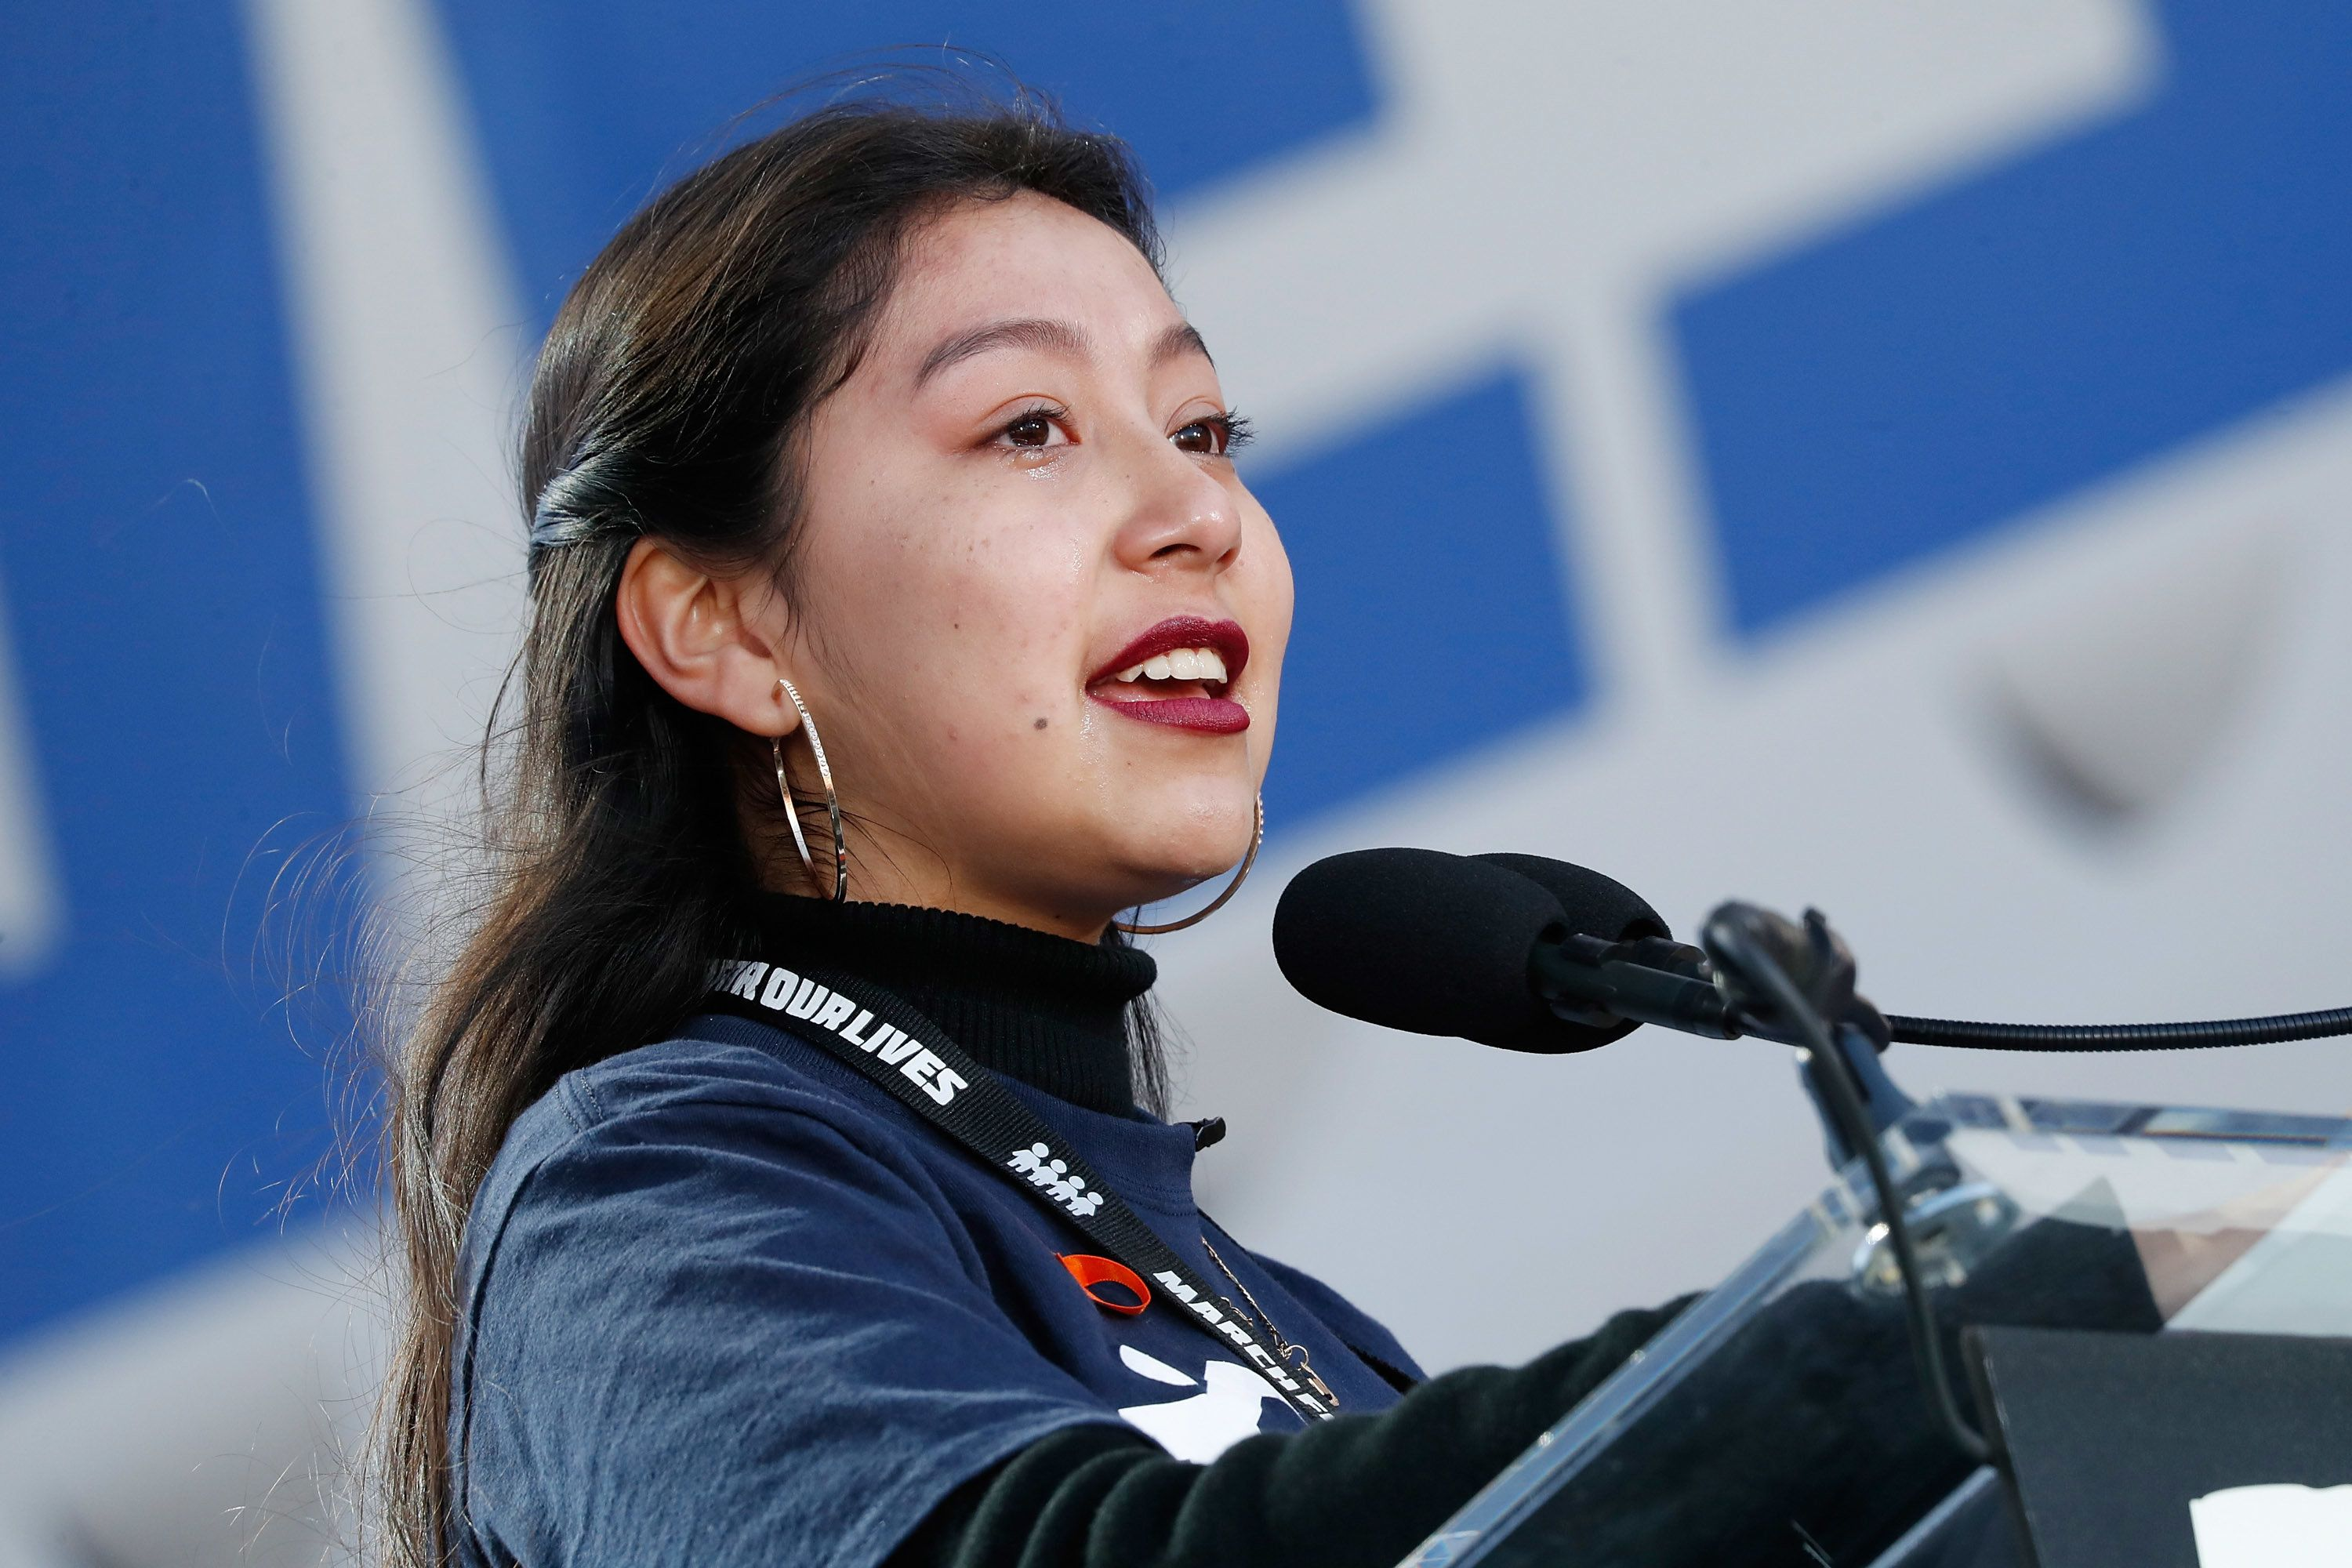 Edna Chavez spoke at the March For Our Lives rally in D.C. about gun violence and the urgent need for change.